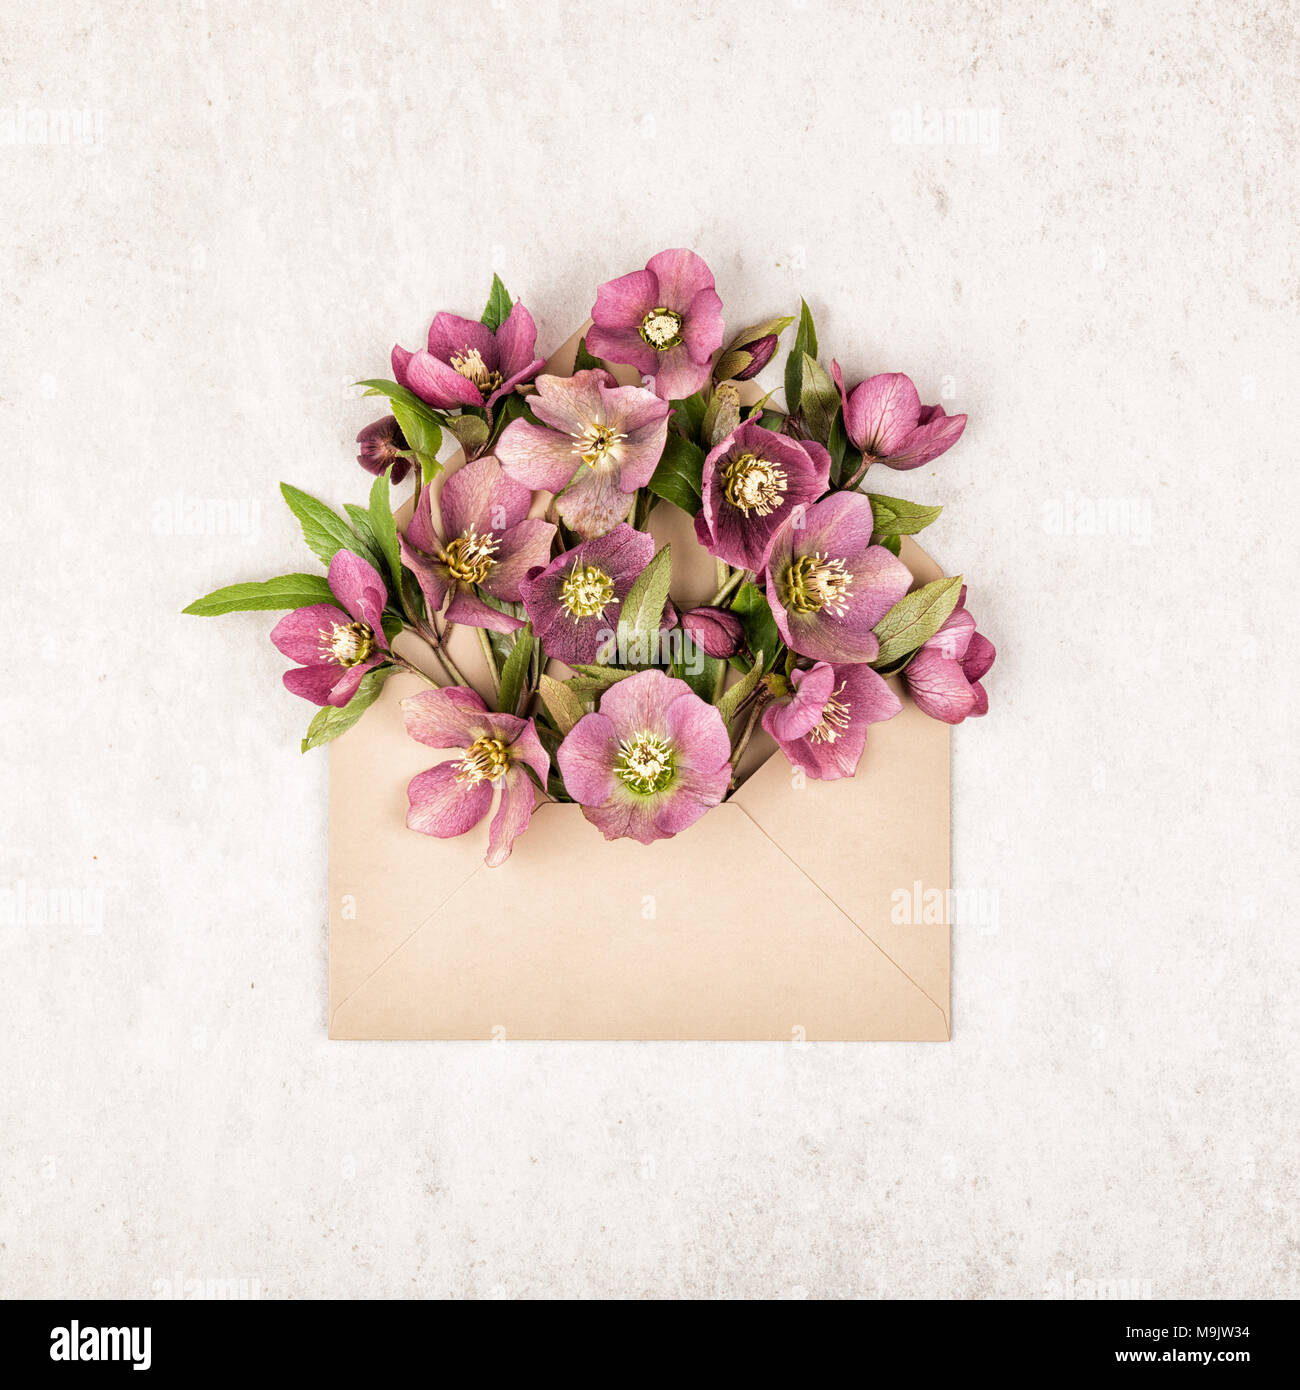 Beige Craft Envelope Full Of Pink And Red Flowers And Green Leaves